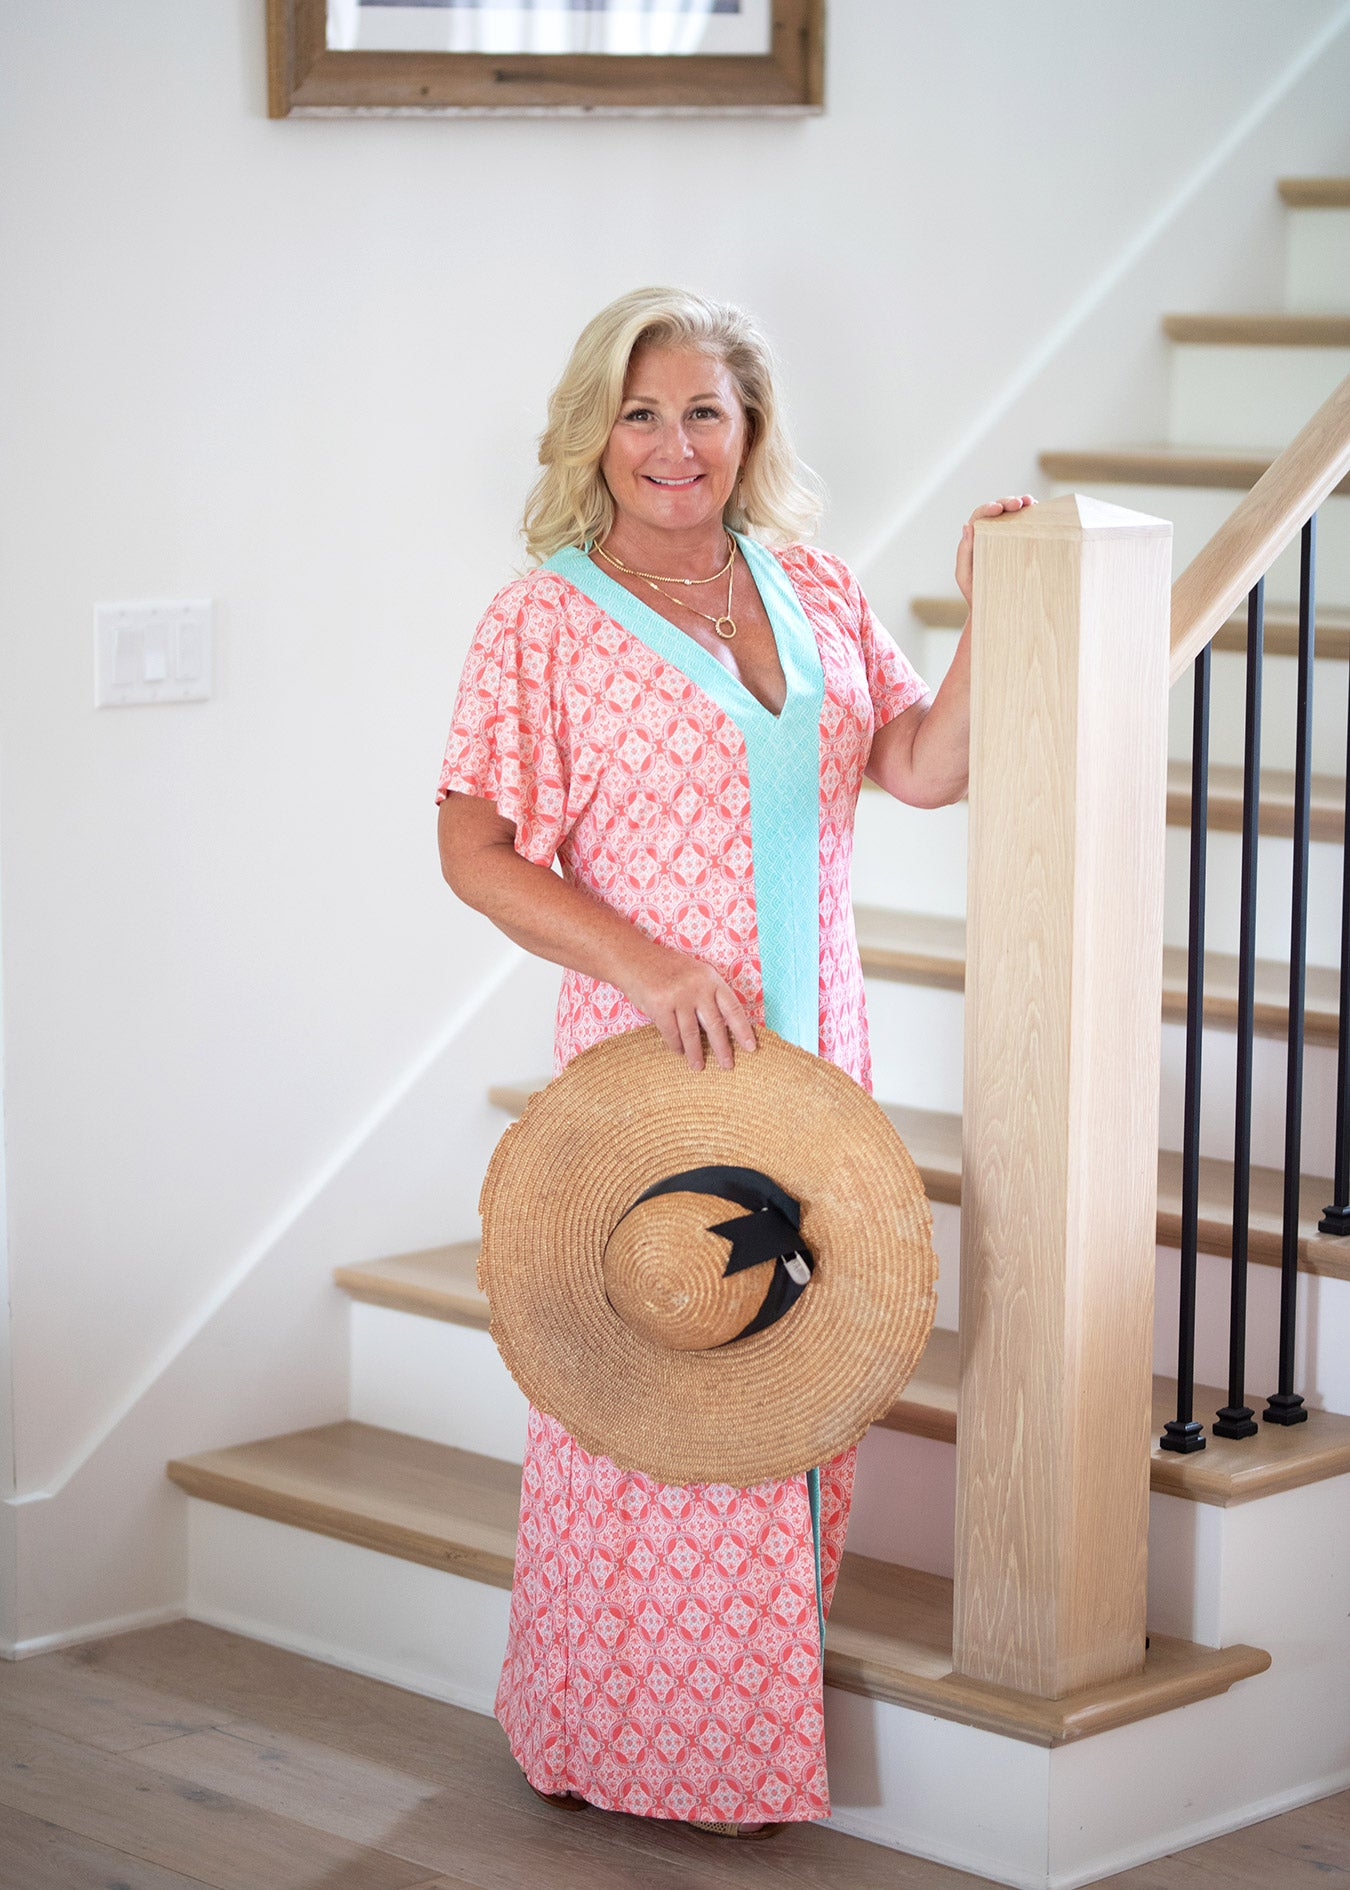 Mollie Spriggs wearing Cabana Life Coral Tides Maxi Dress